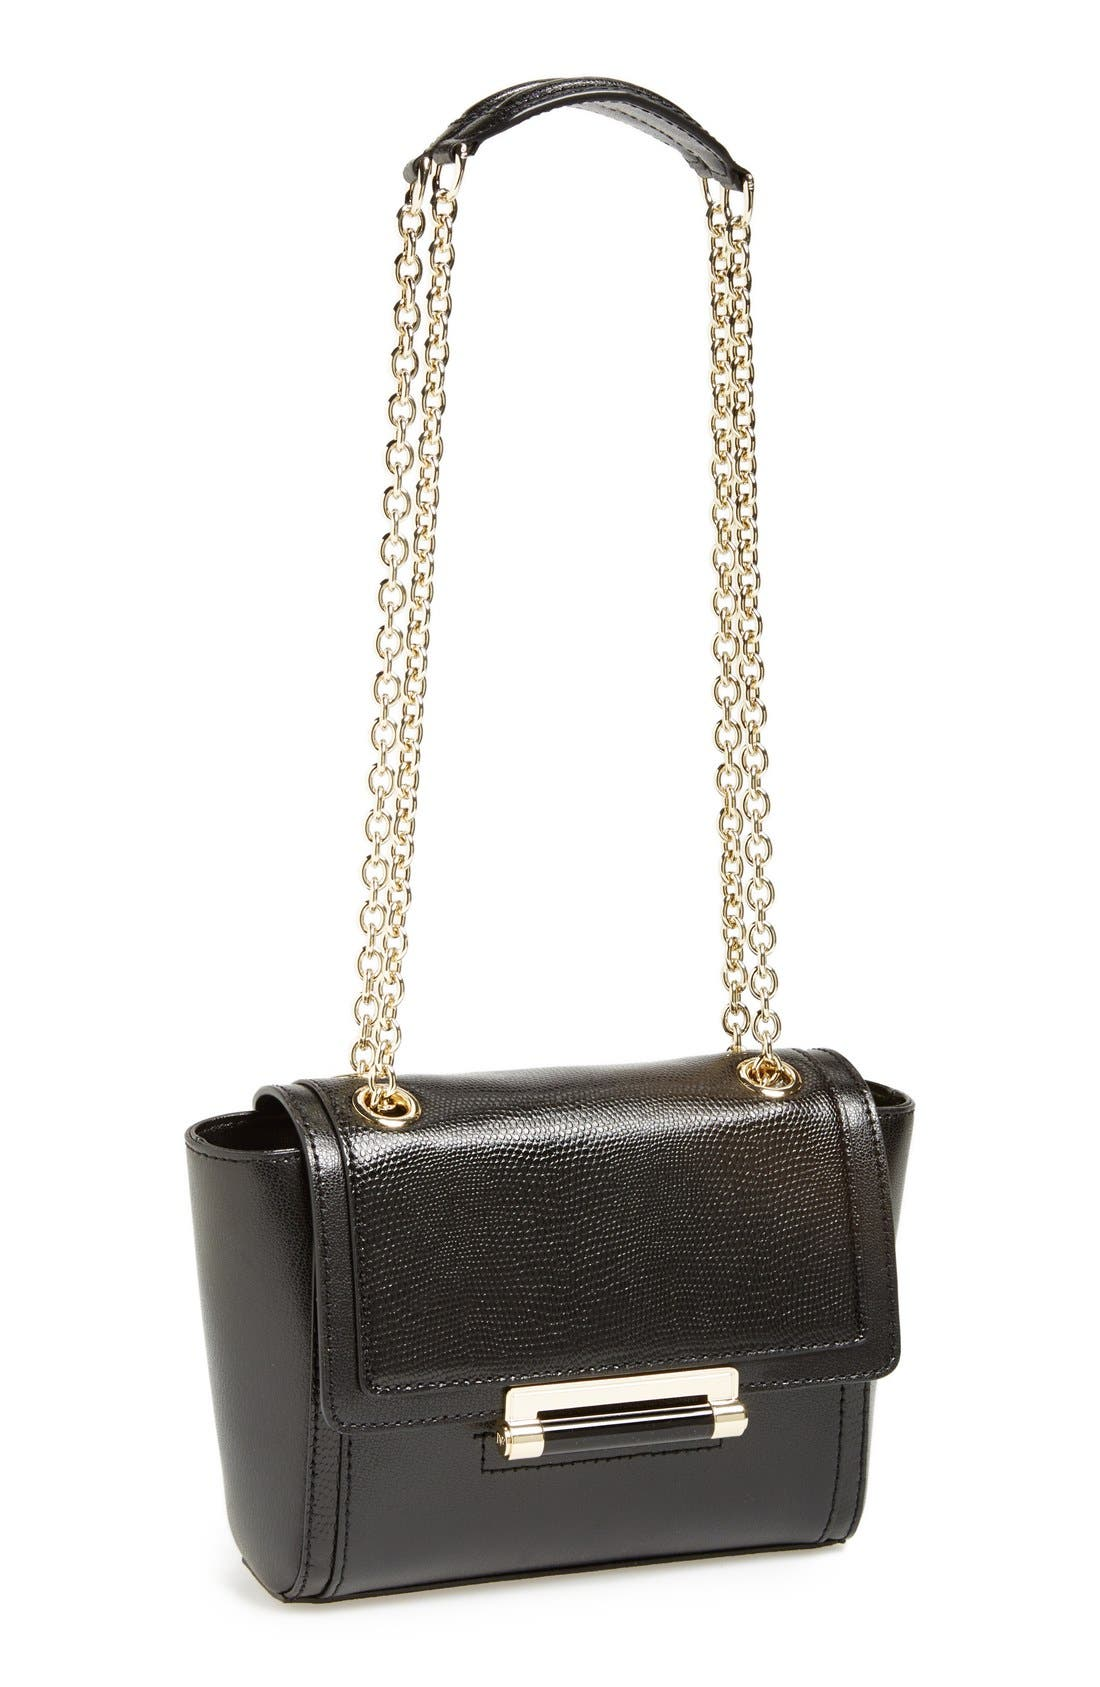 Main Image - Diane von Furstenberg 'Mini 440' Leather Crossbody Bag